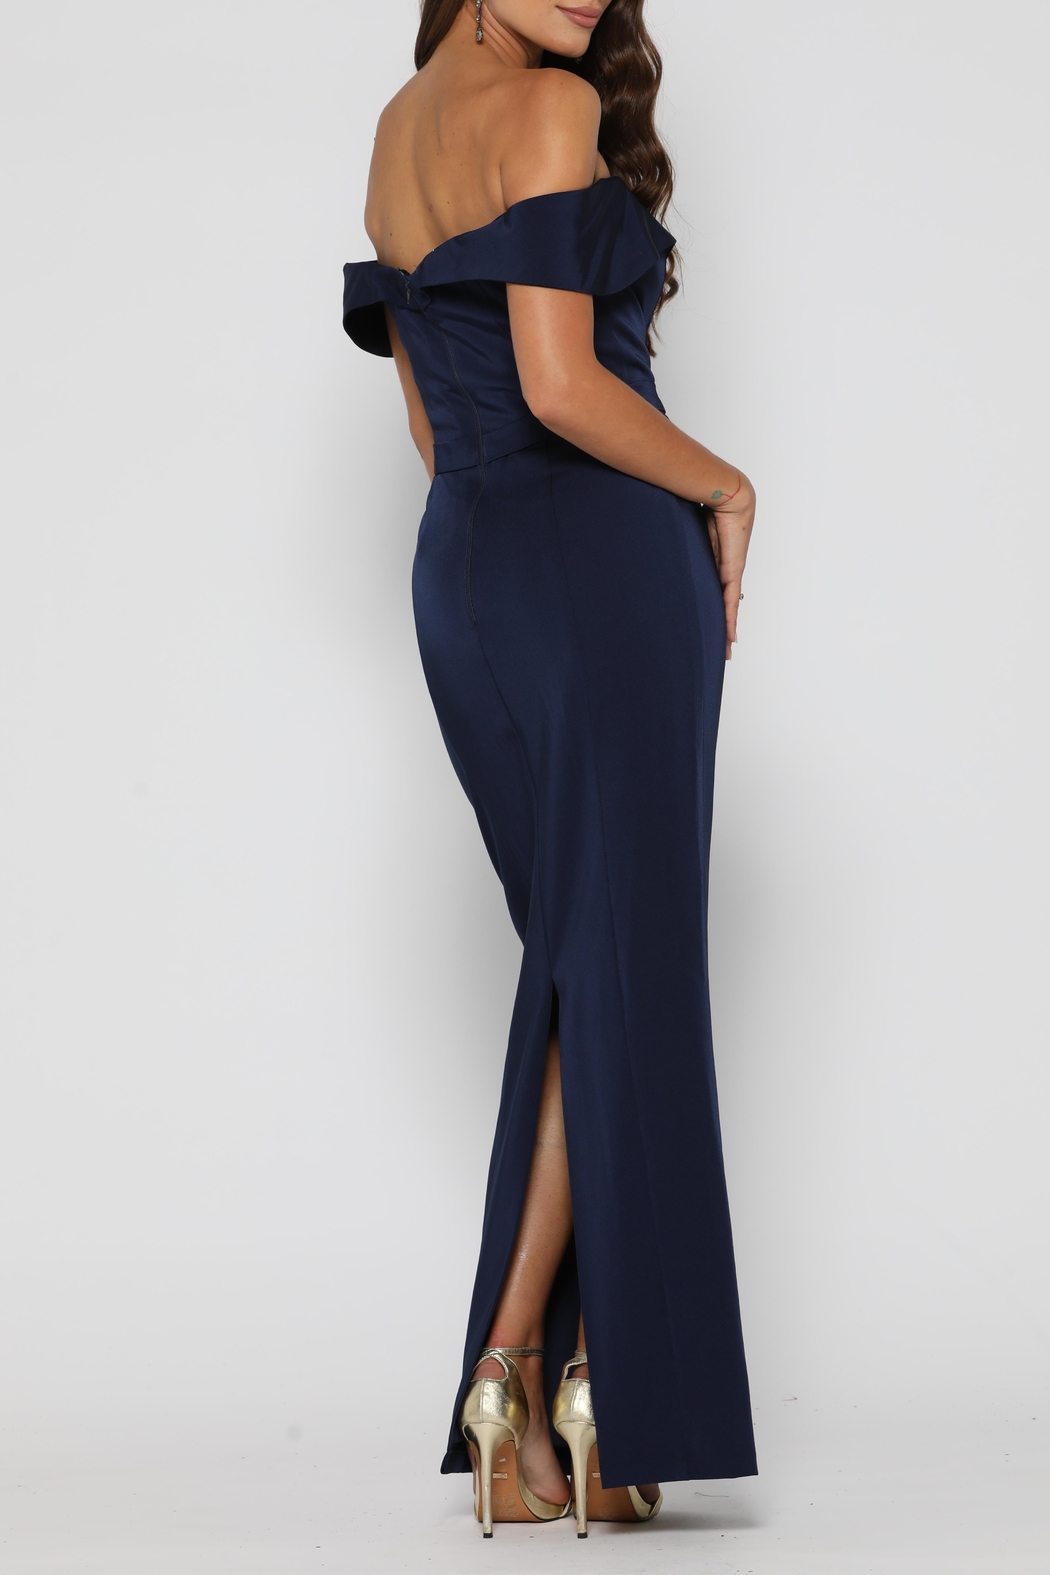 YSS the Label Paris Dress Navy - Side Cropped Image